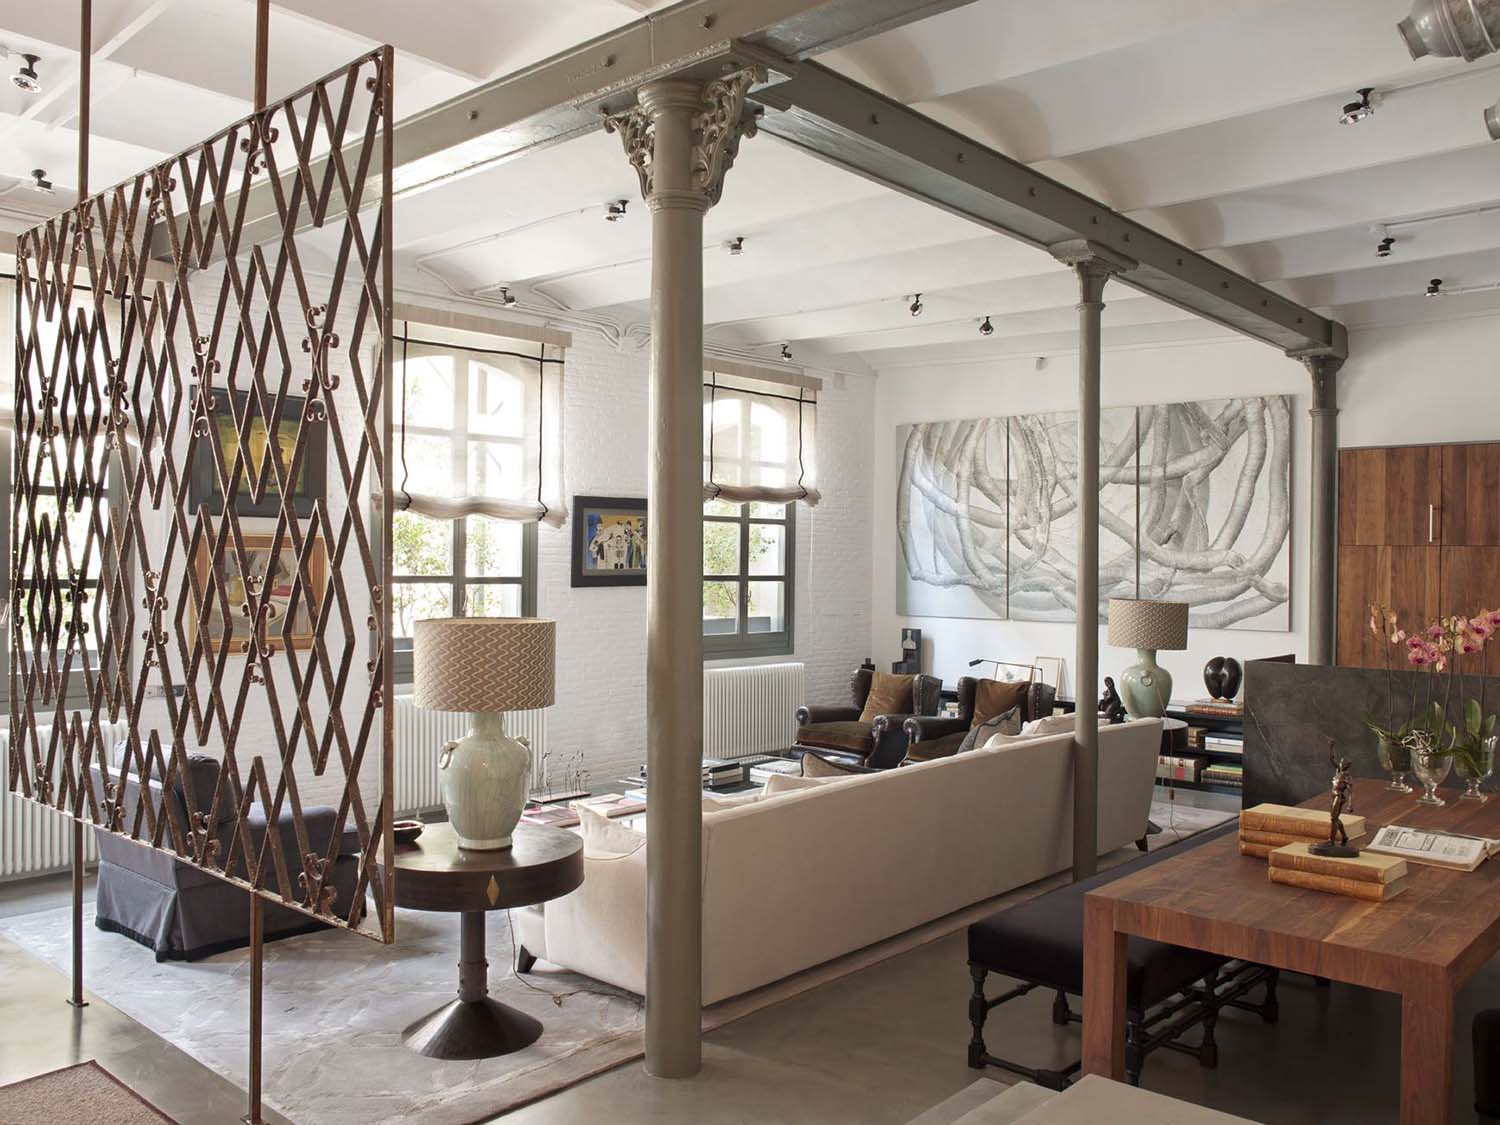 Interior loft industrial moderno en ny virlova style for Interior design moderno